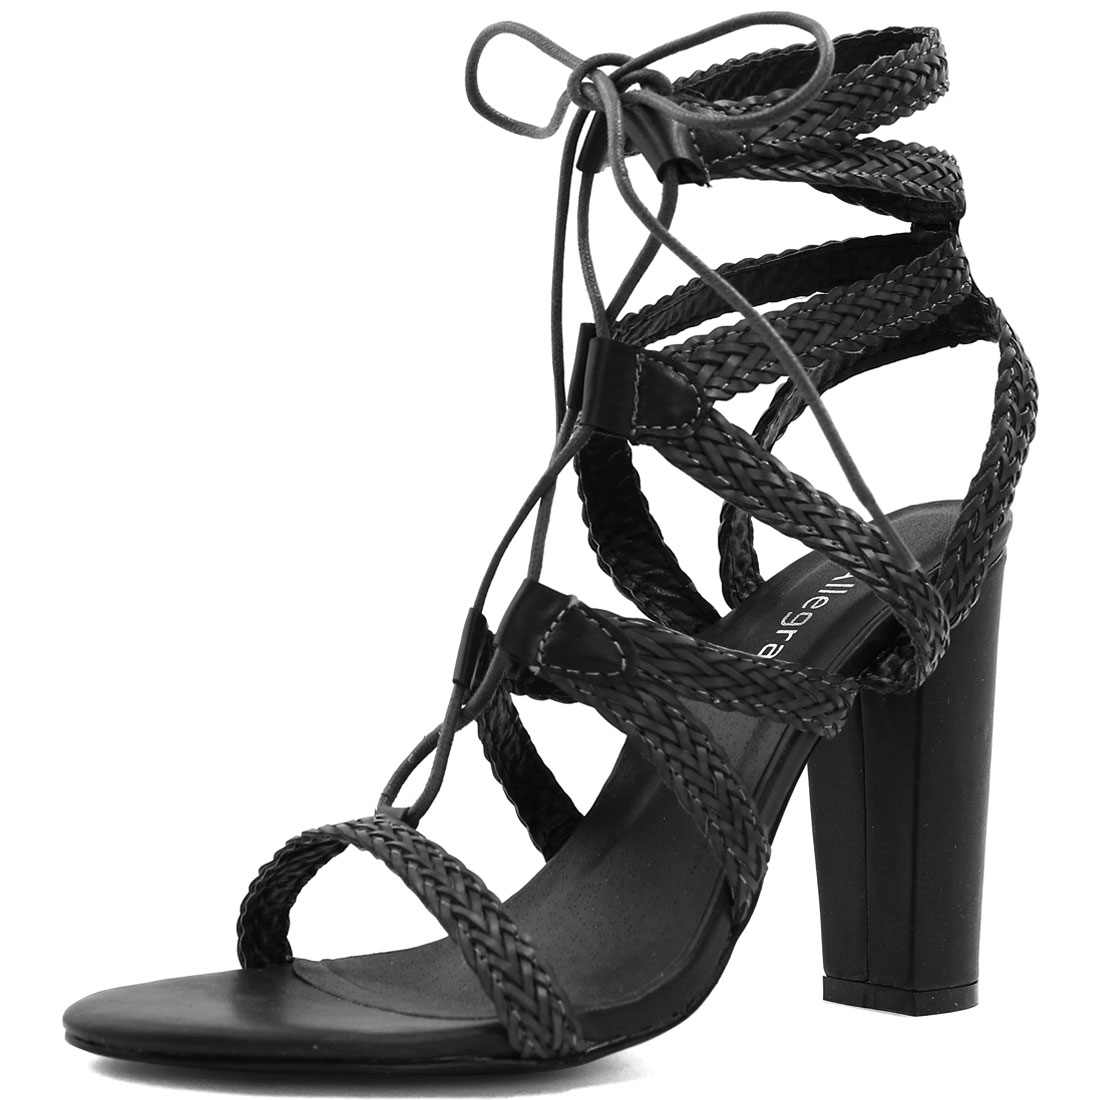 Woman Chunky Heel Braided Strappy Lace-Up Sandals Black US 6.5